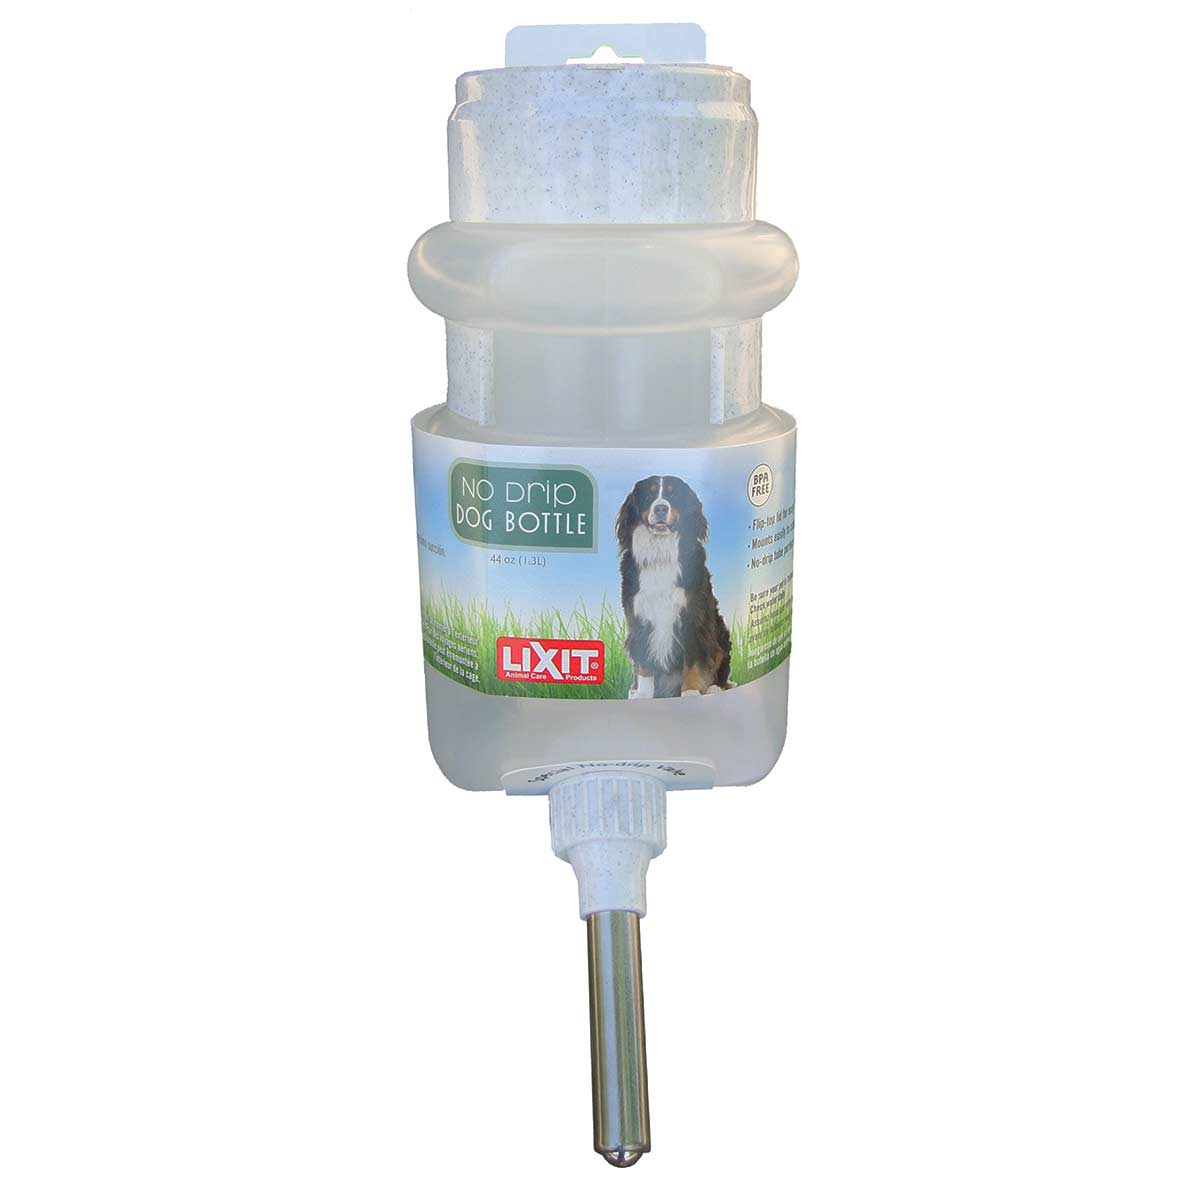 Lixit No Drip Dog Bottle With Ball Tip Valve 44 oz